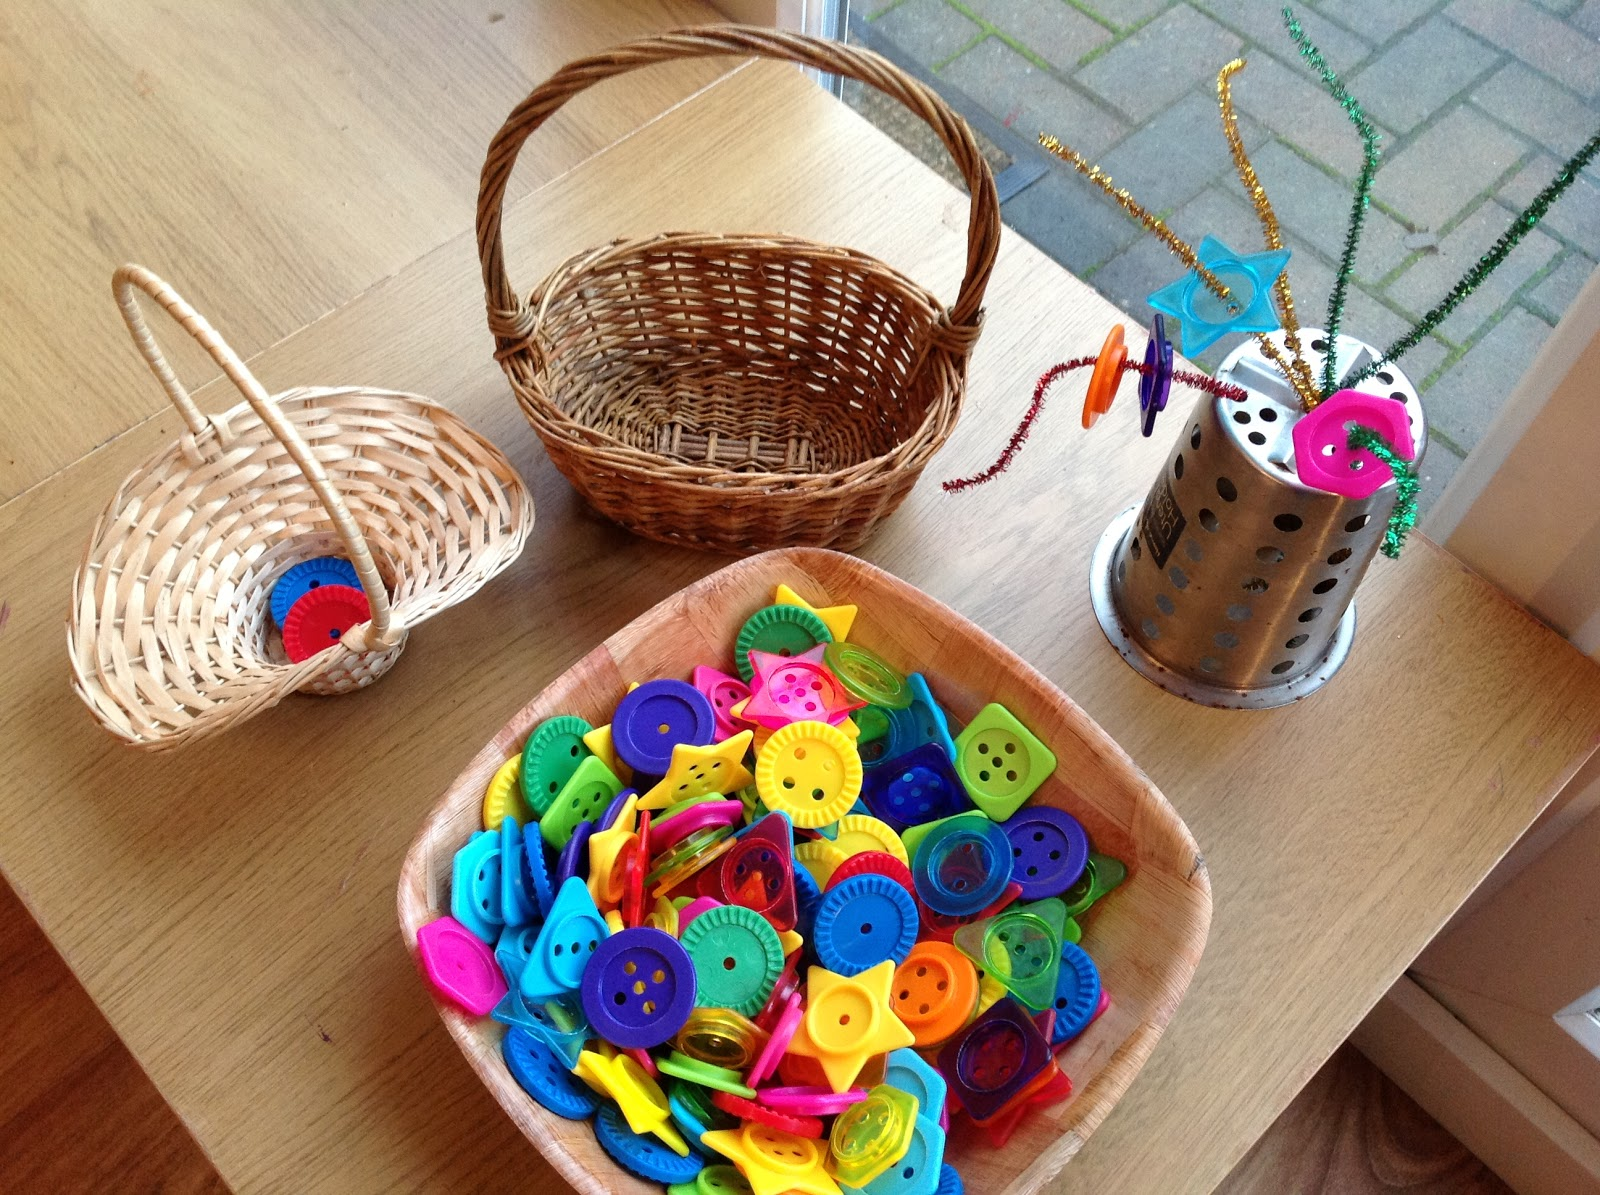 1000+ images about Preschool Table Activities on Pinterest ...